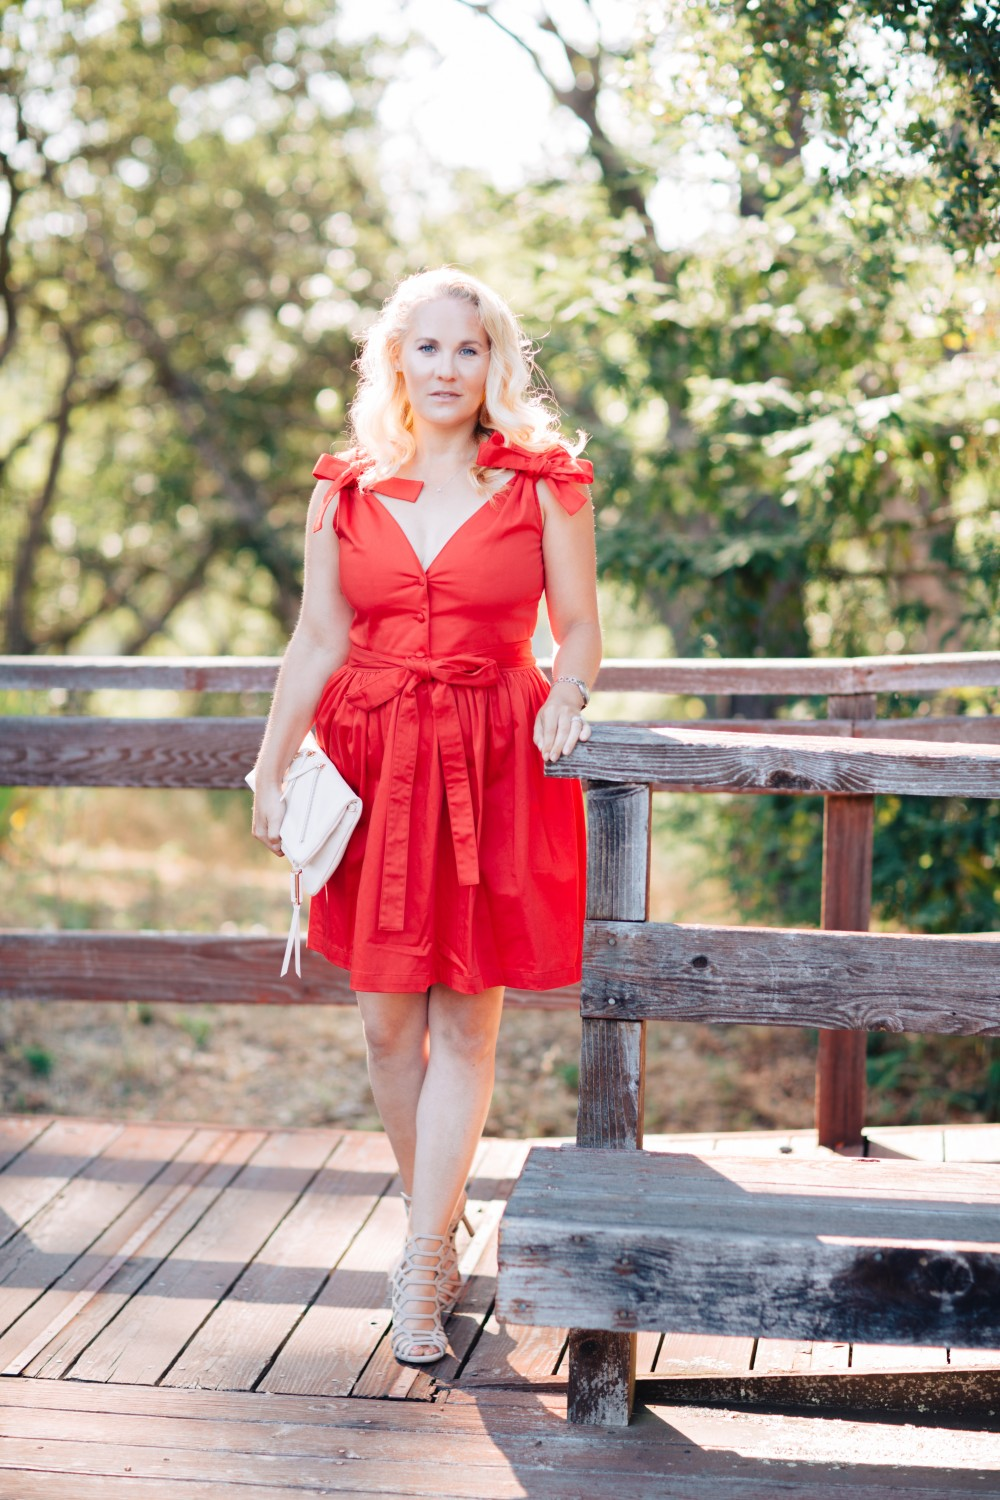 Little Red Dress-Alexis-Bow Detail Dress-Outfit Inspiration-Schutz Heels-Have Need Want